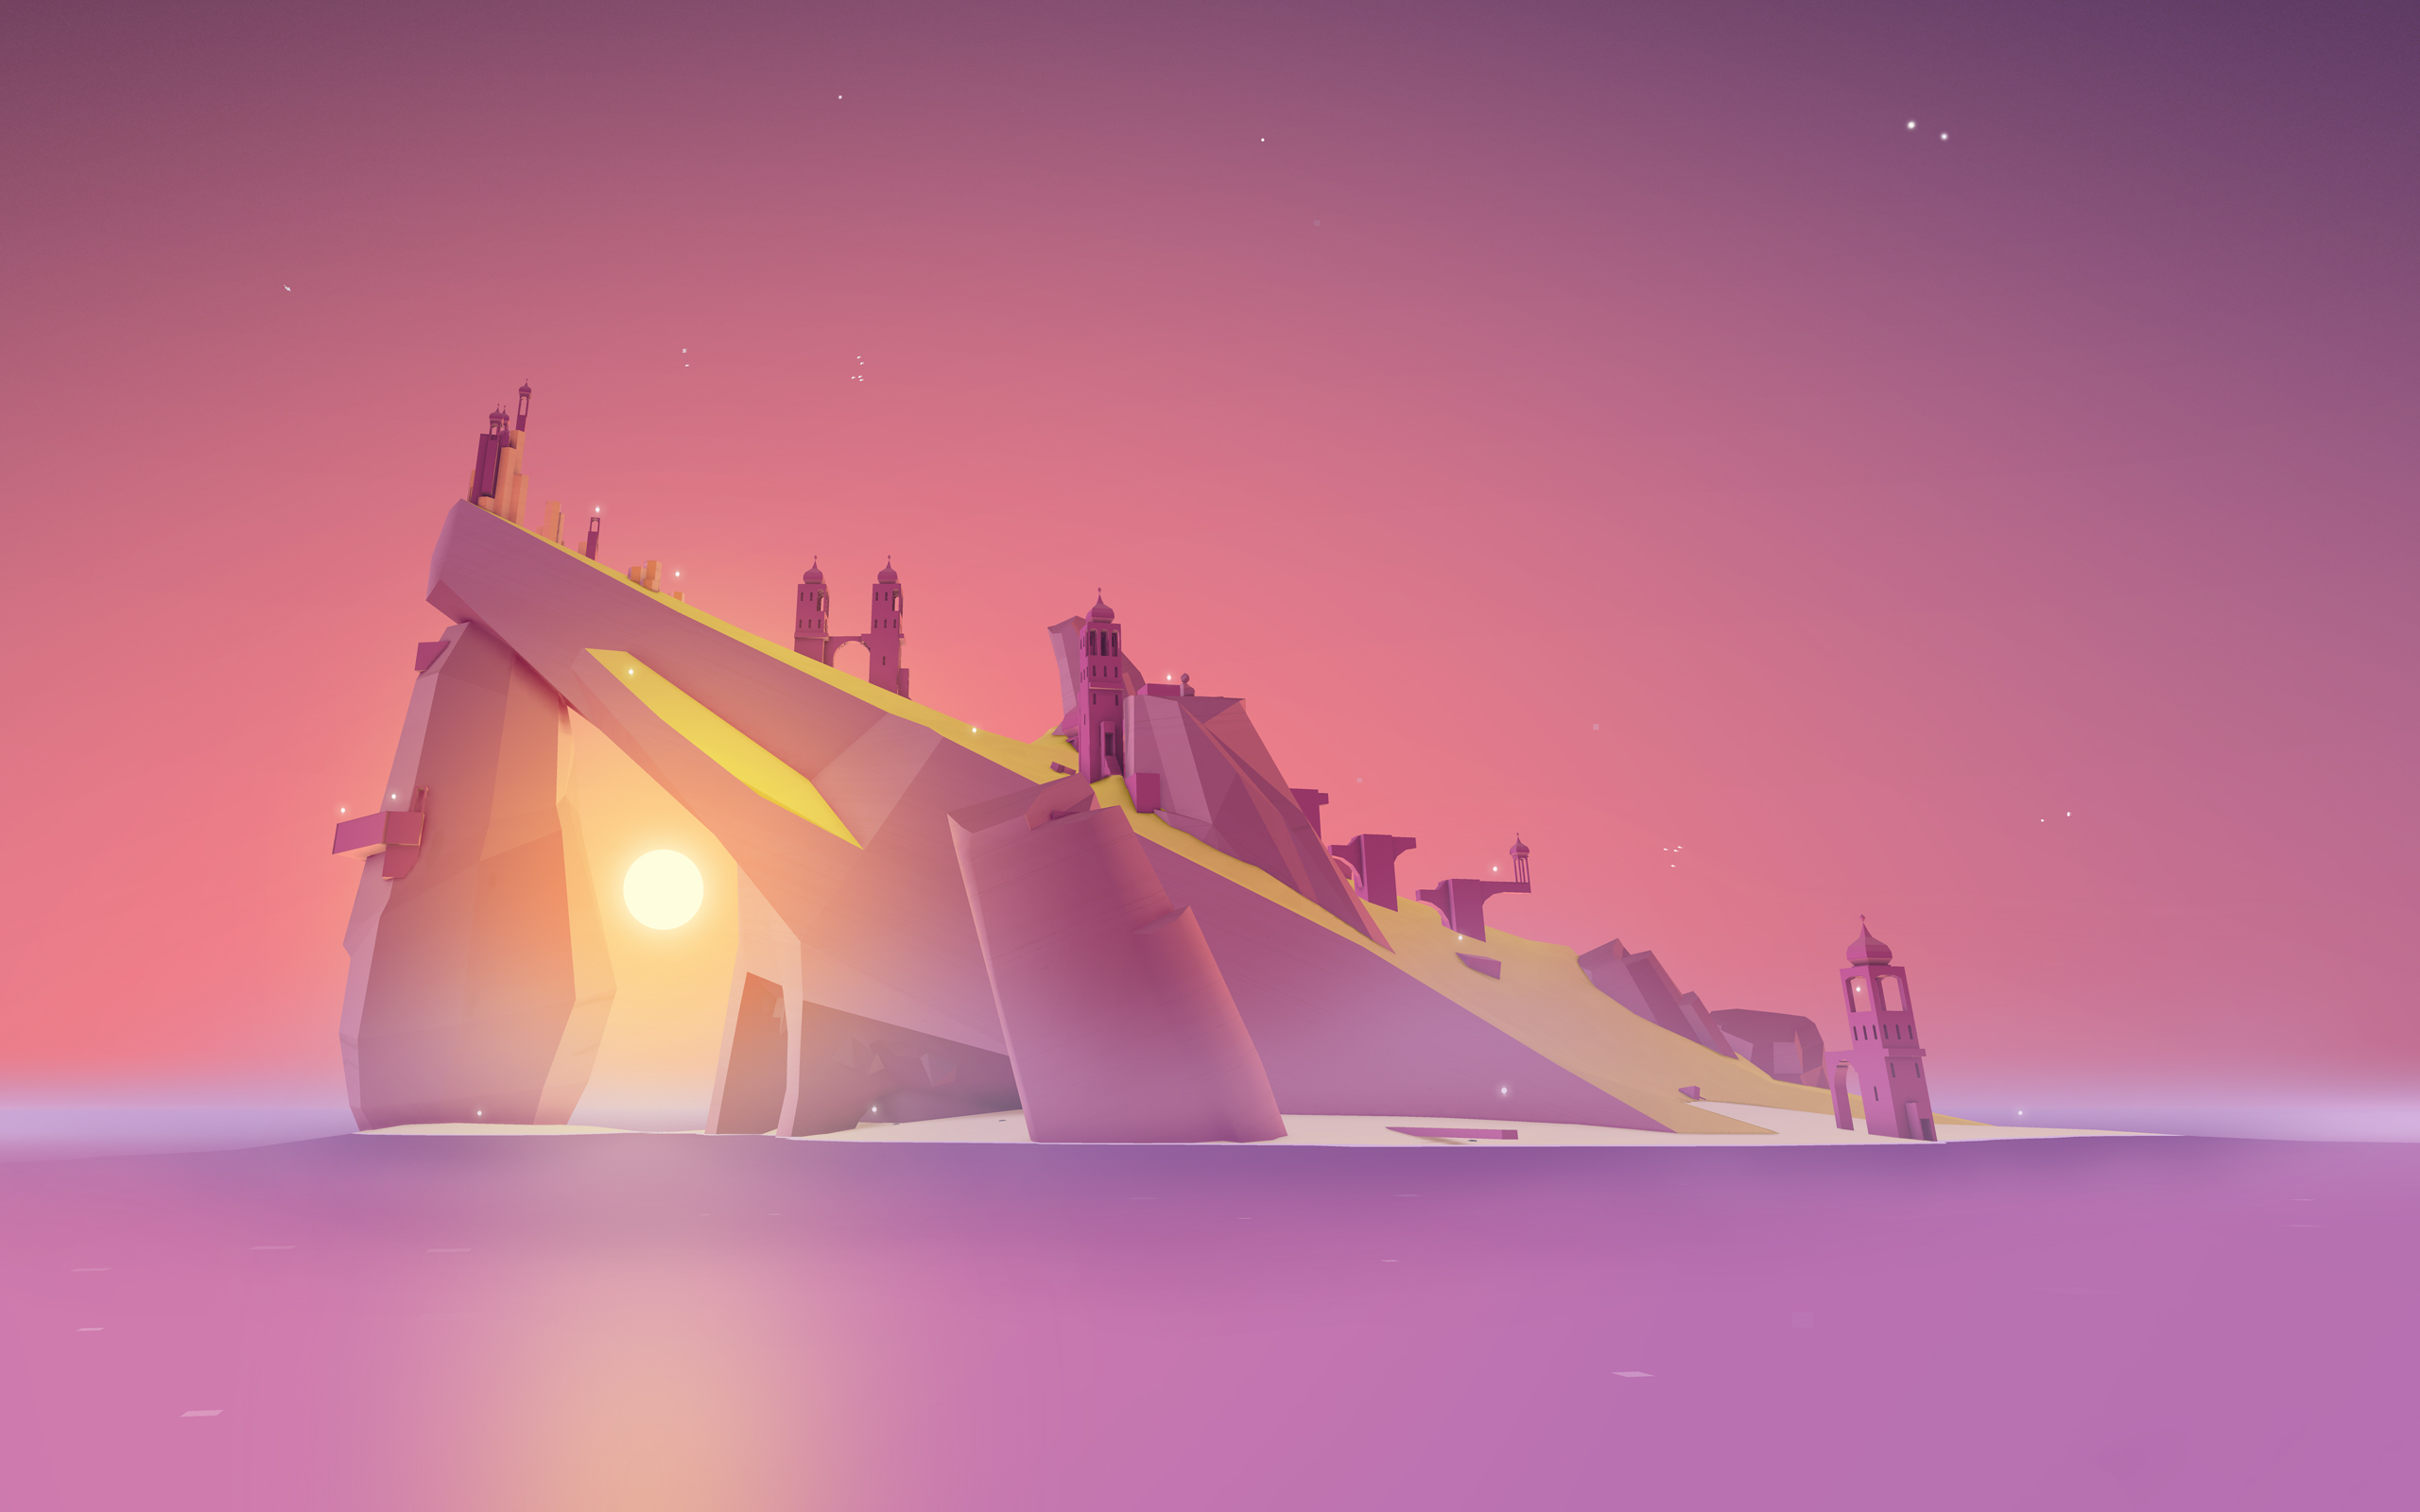 Land S End A Vr Game From The Team Behind Monument Valley